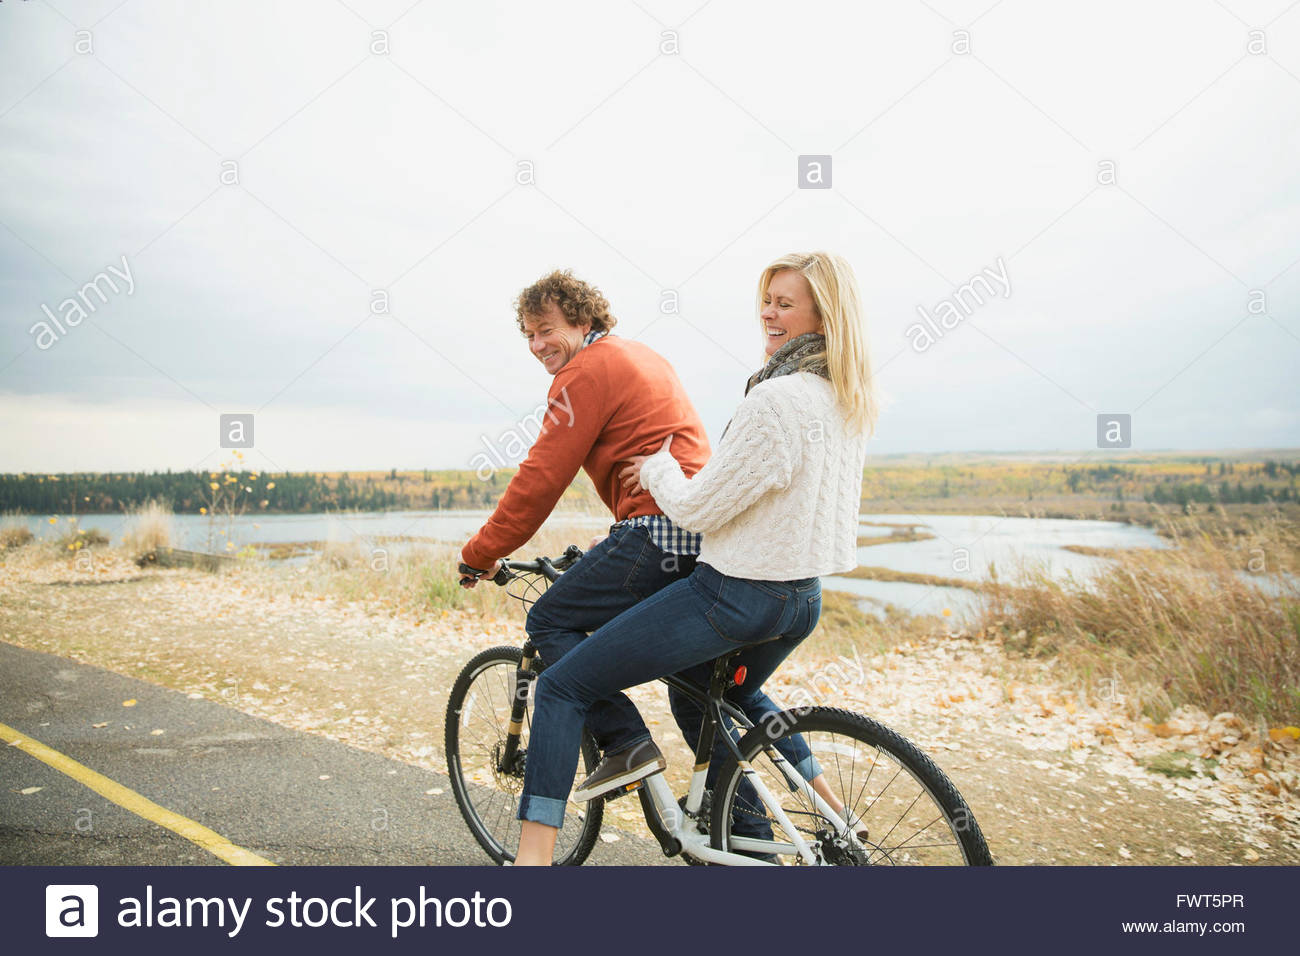 Couple riding bicycle together on roadway - Stock Image